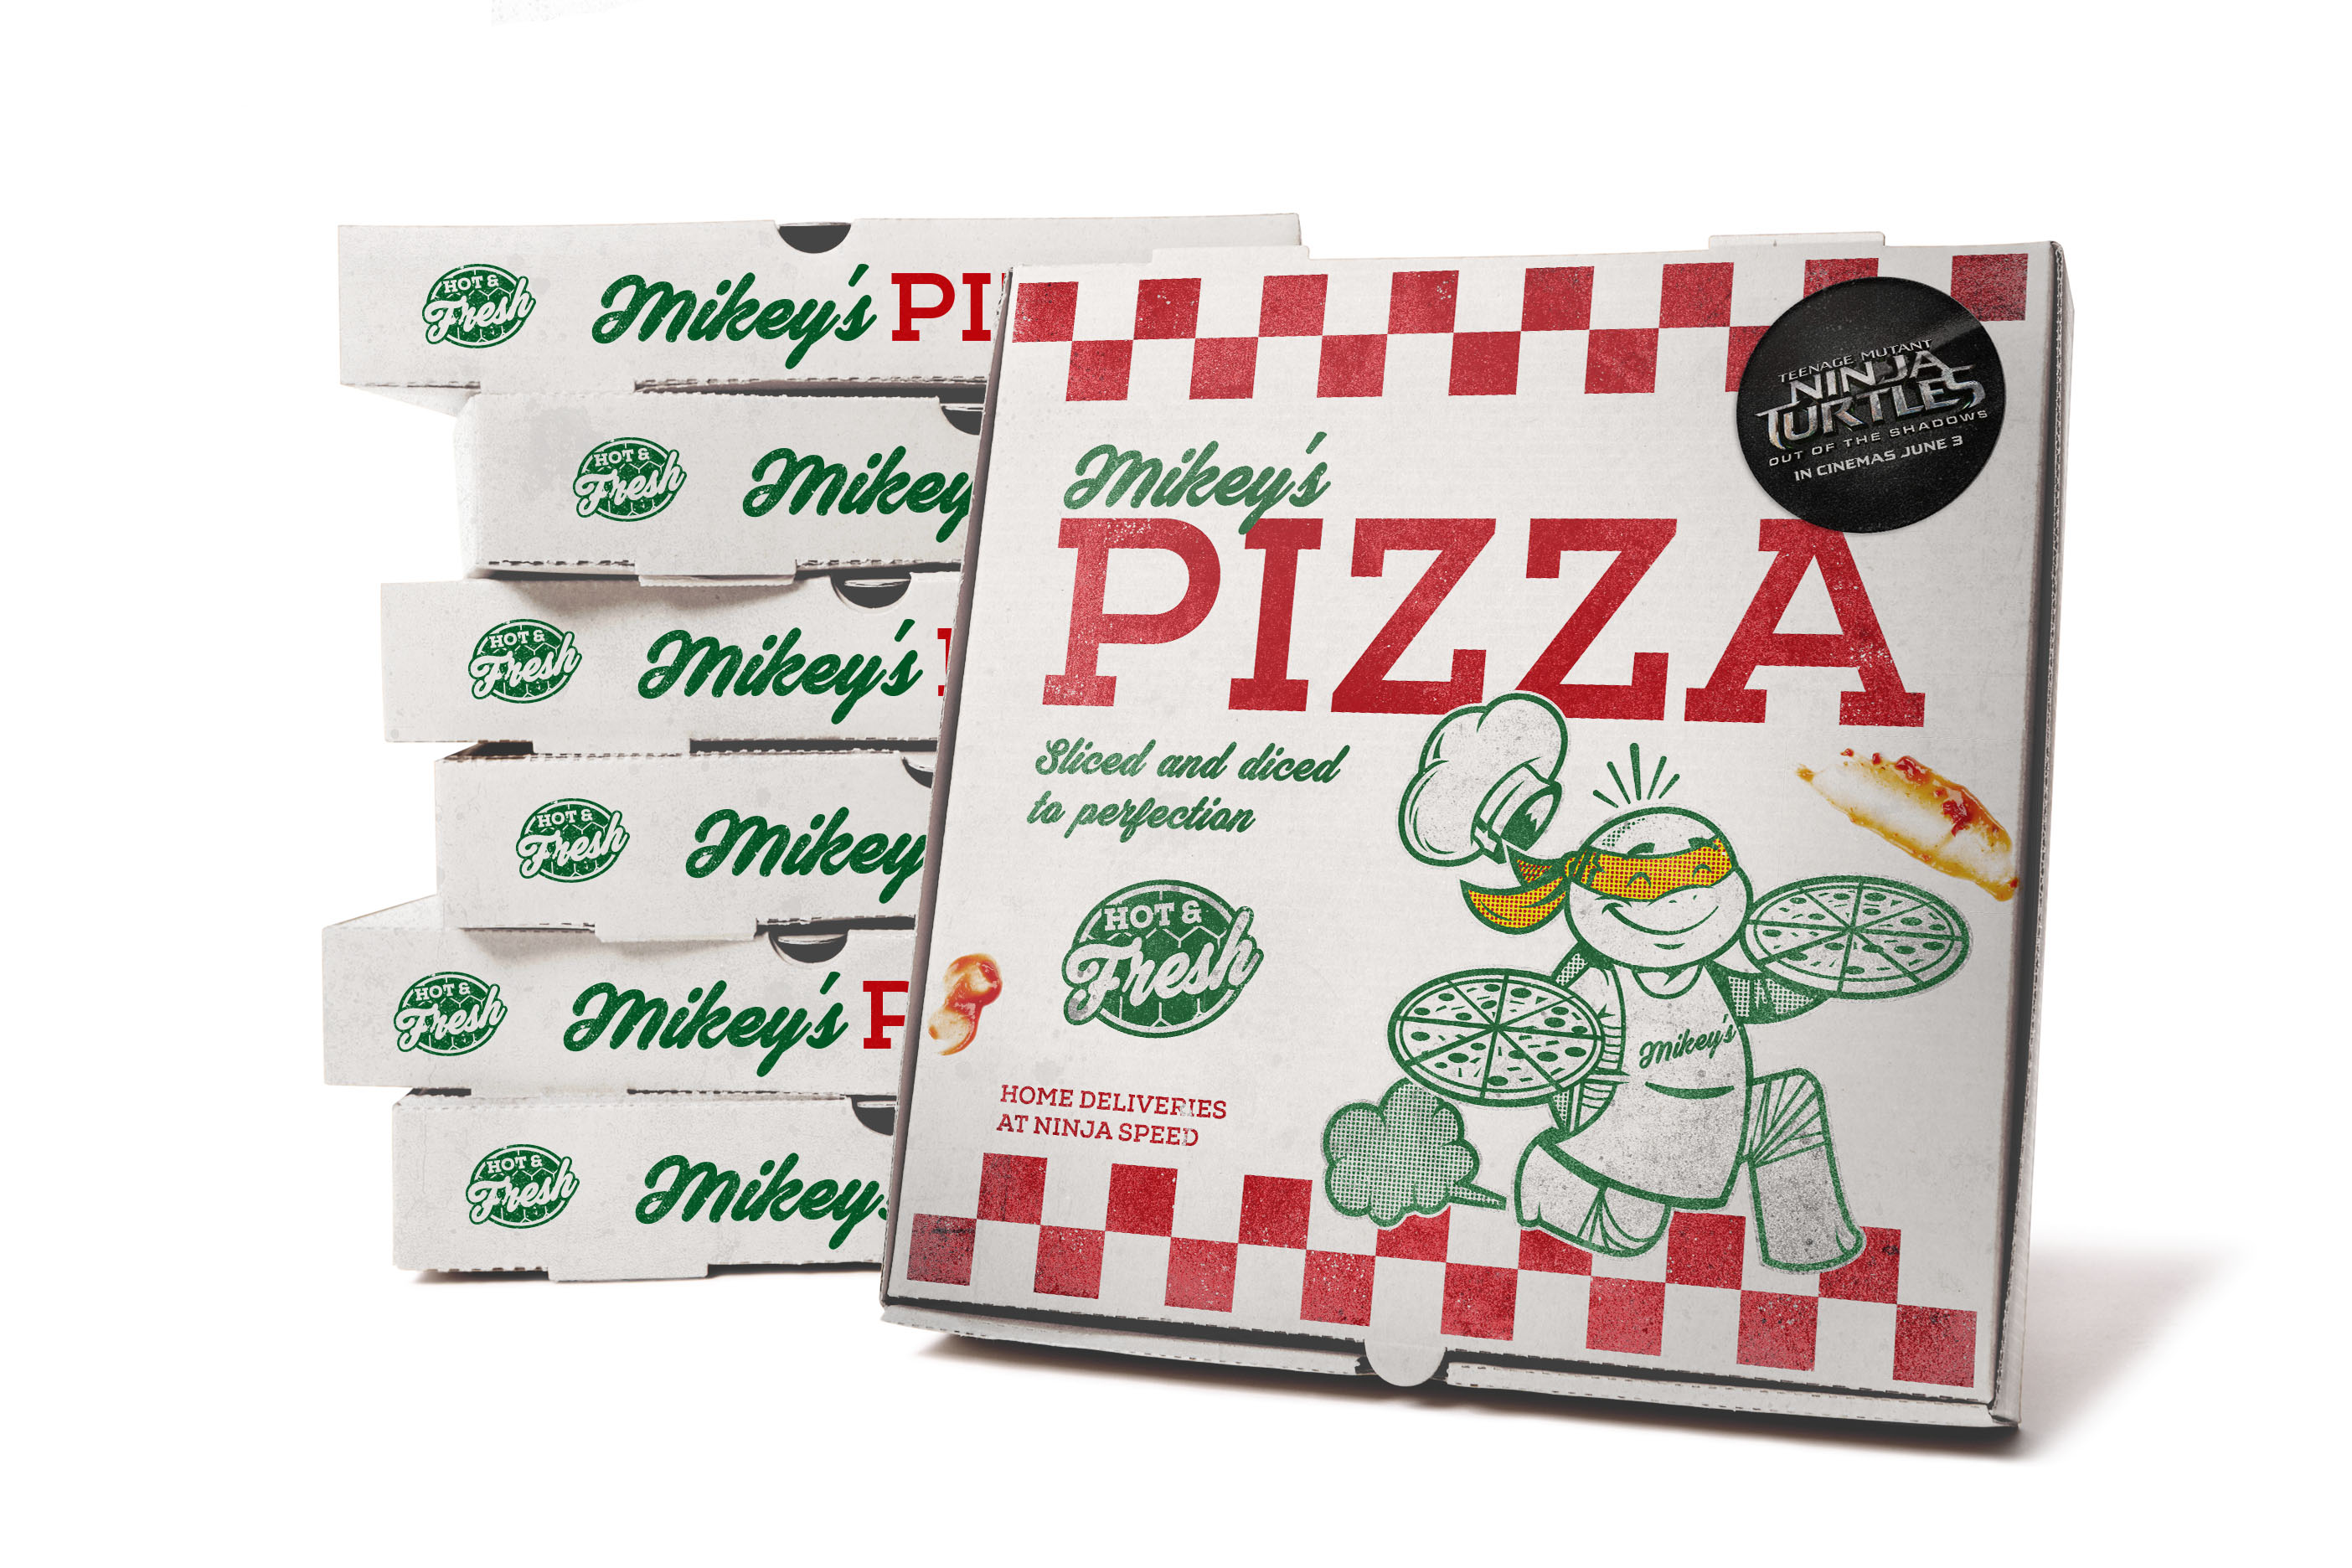 TMNT Pizza box by UK-based designer and illustrator Dan Bailey, who works under the alias of Rubber Penguin.